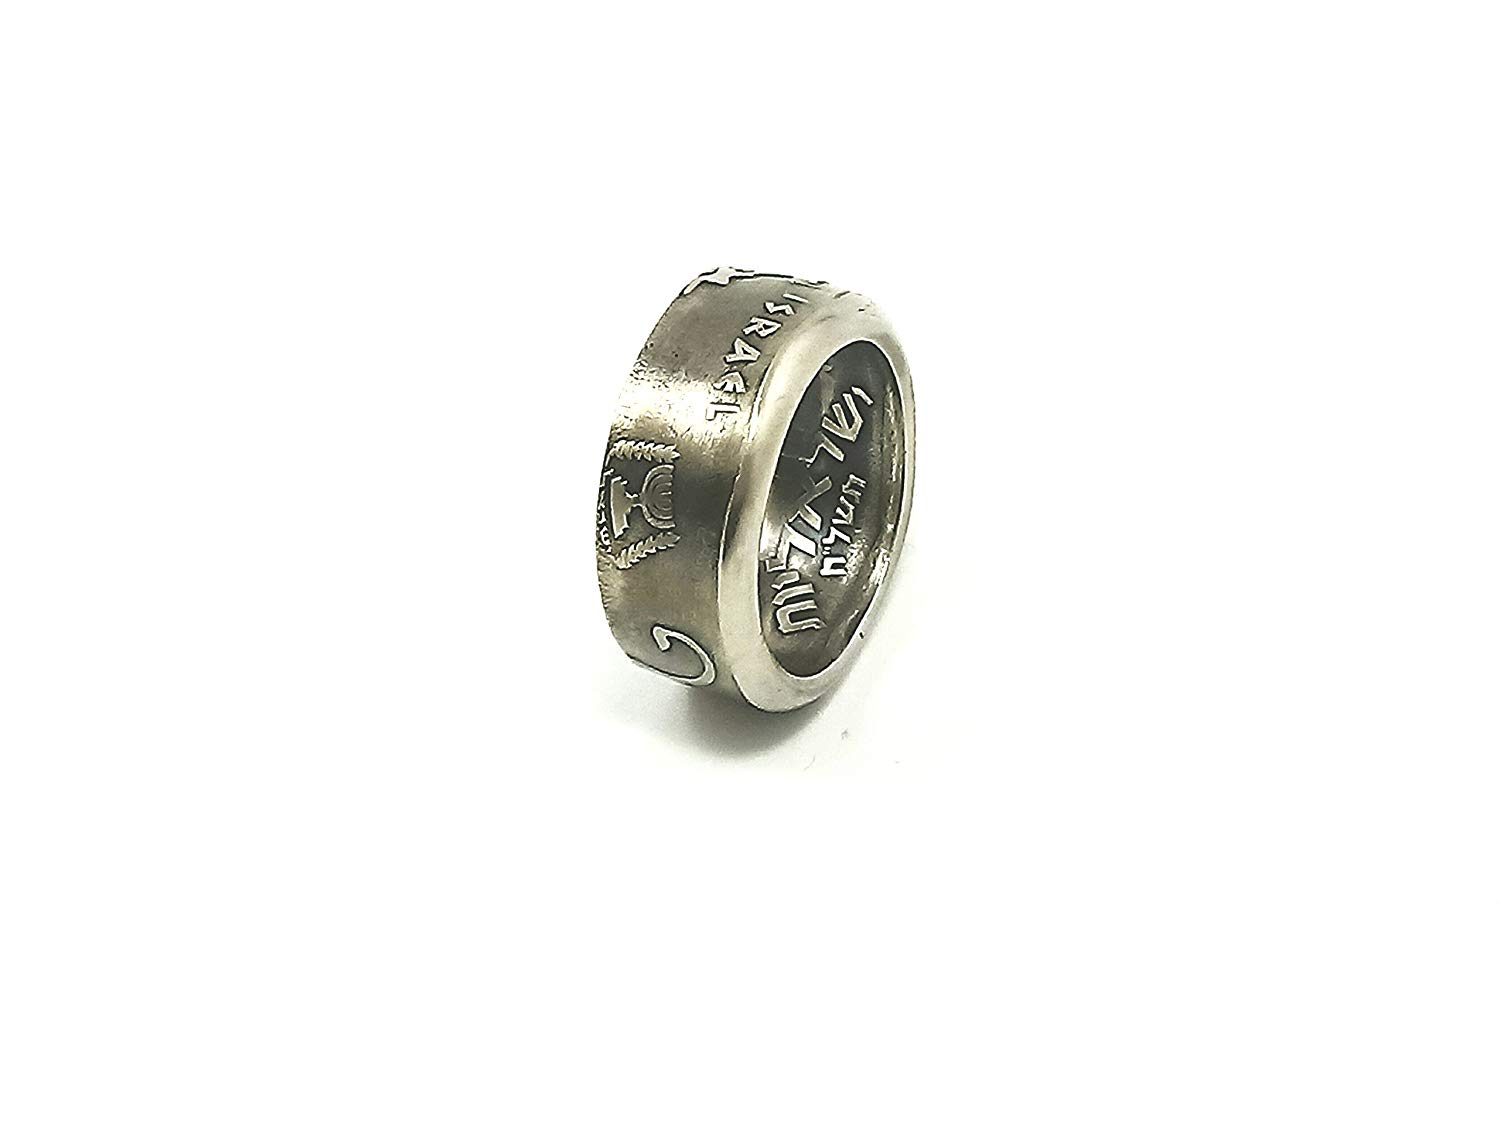 Free shipping Meran Shavit Jewelry silver color Coin Ring Lion of Judah size 7 8 9 10 11 12 13